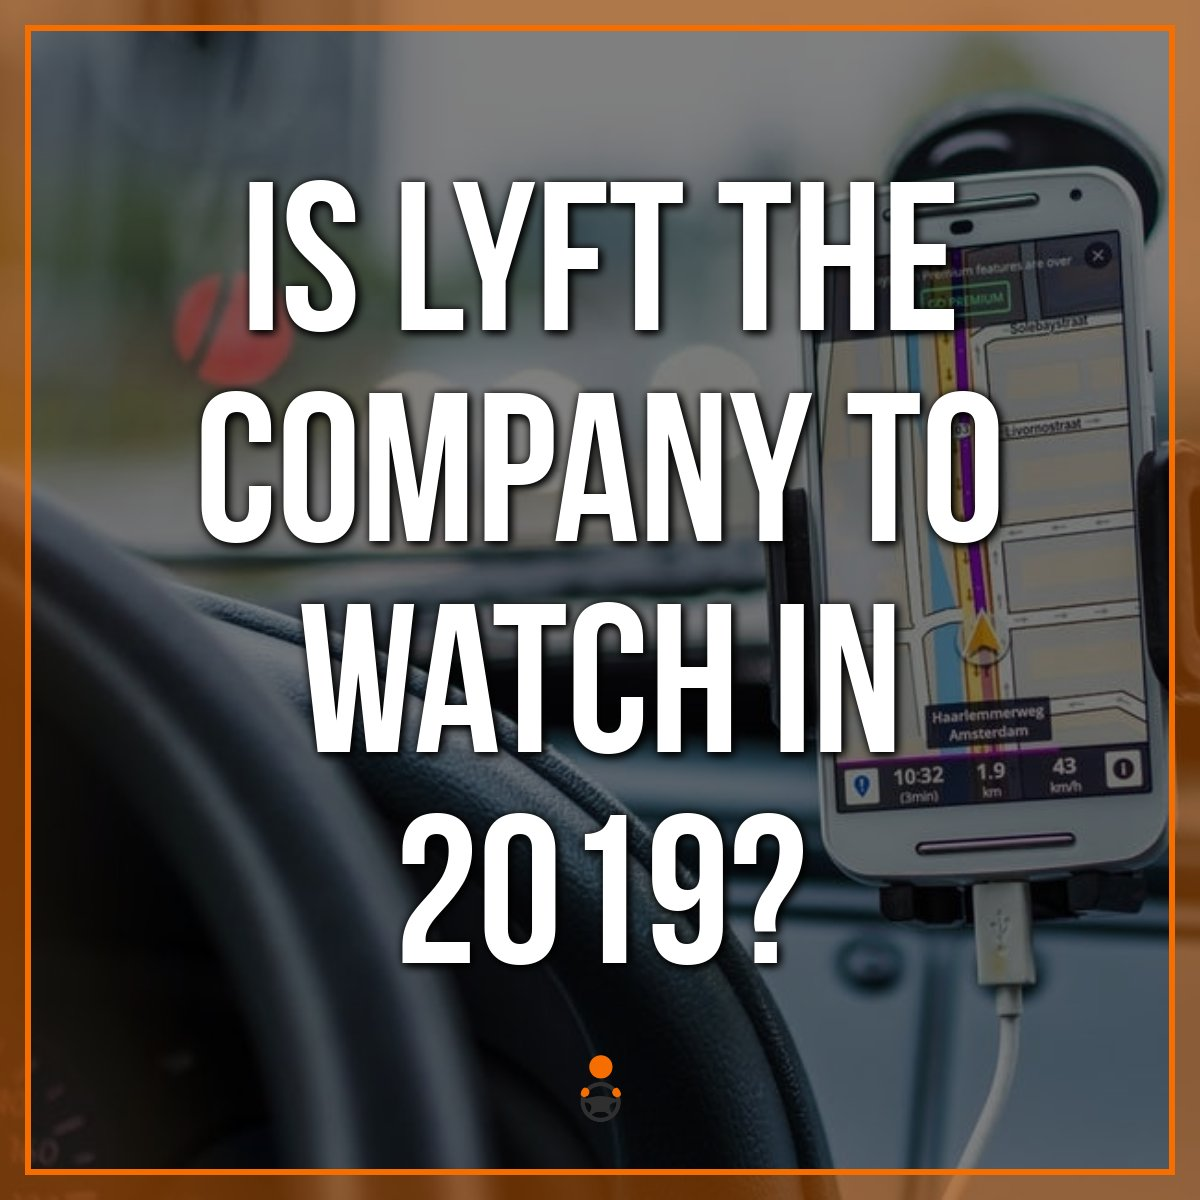 Is Lyft the Company to Watch in 2019?